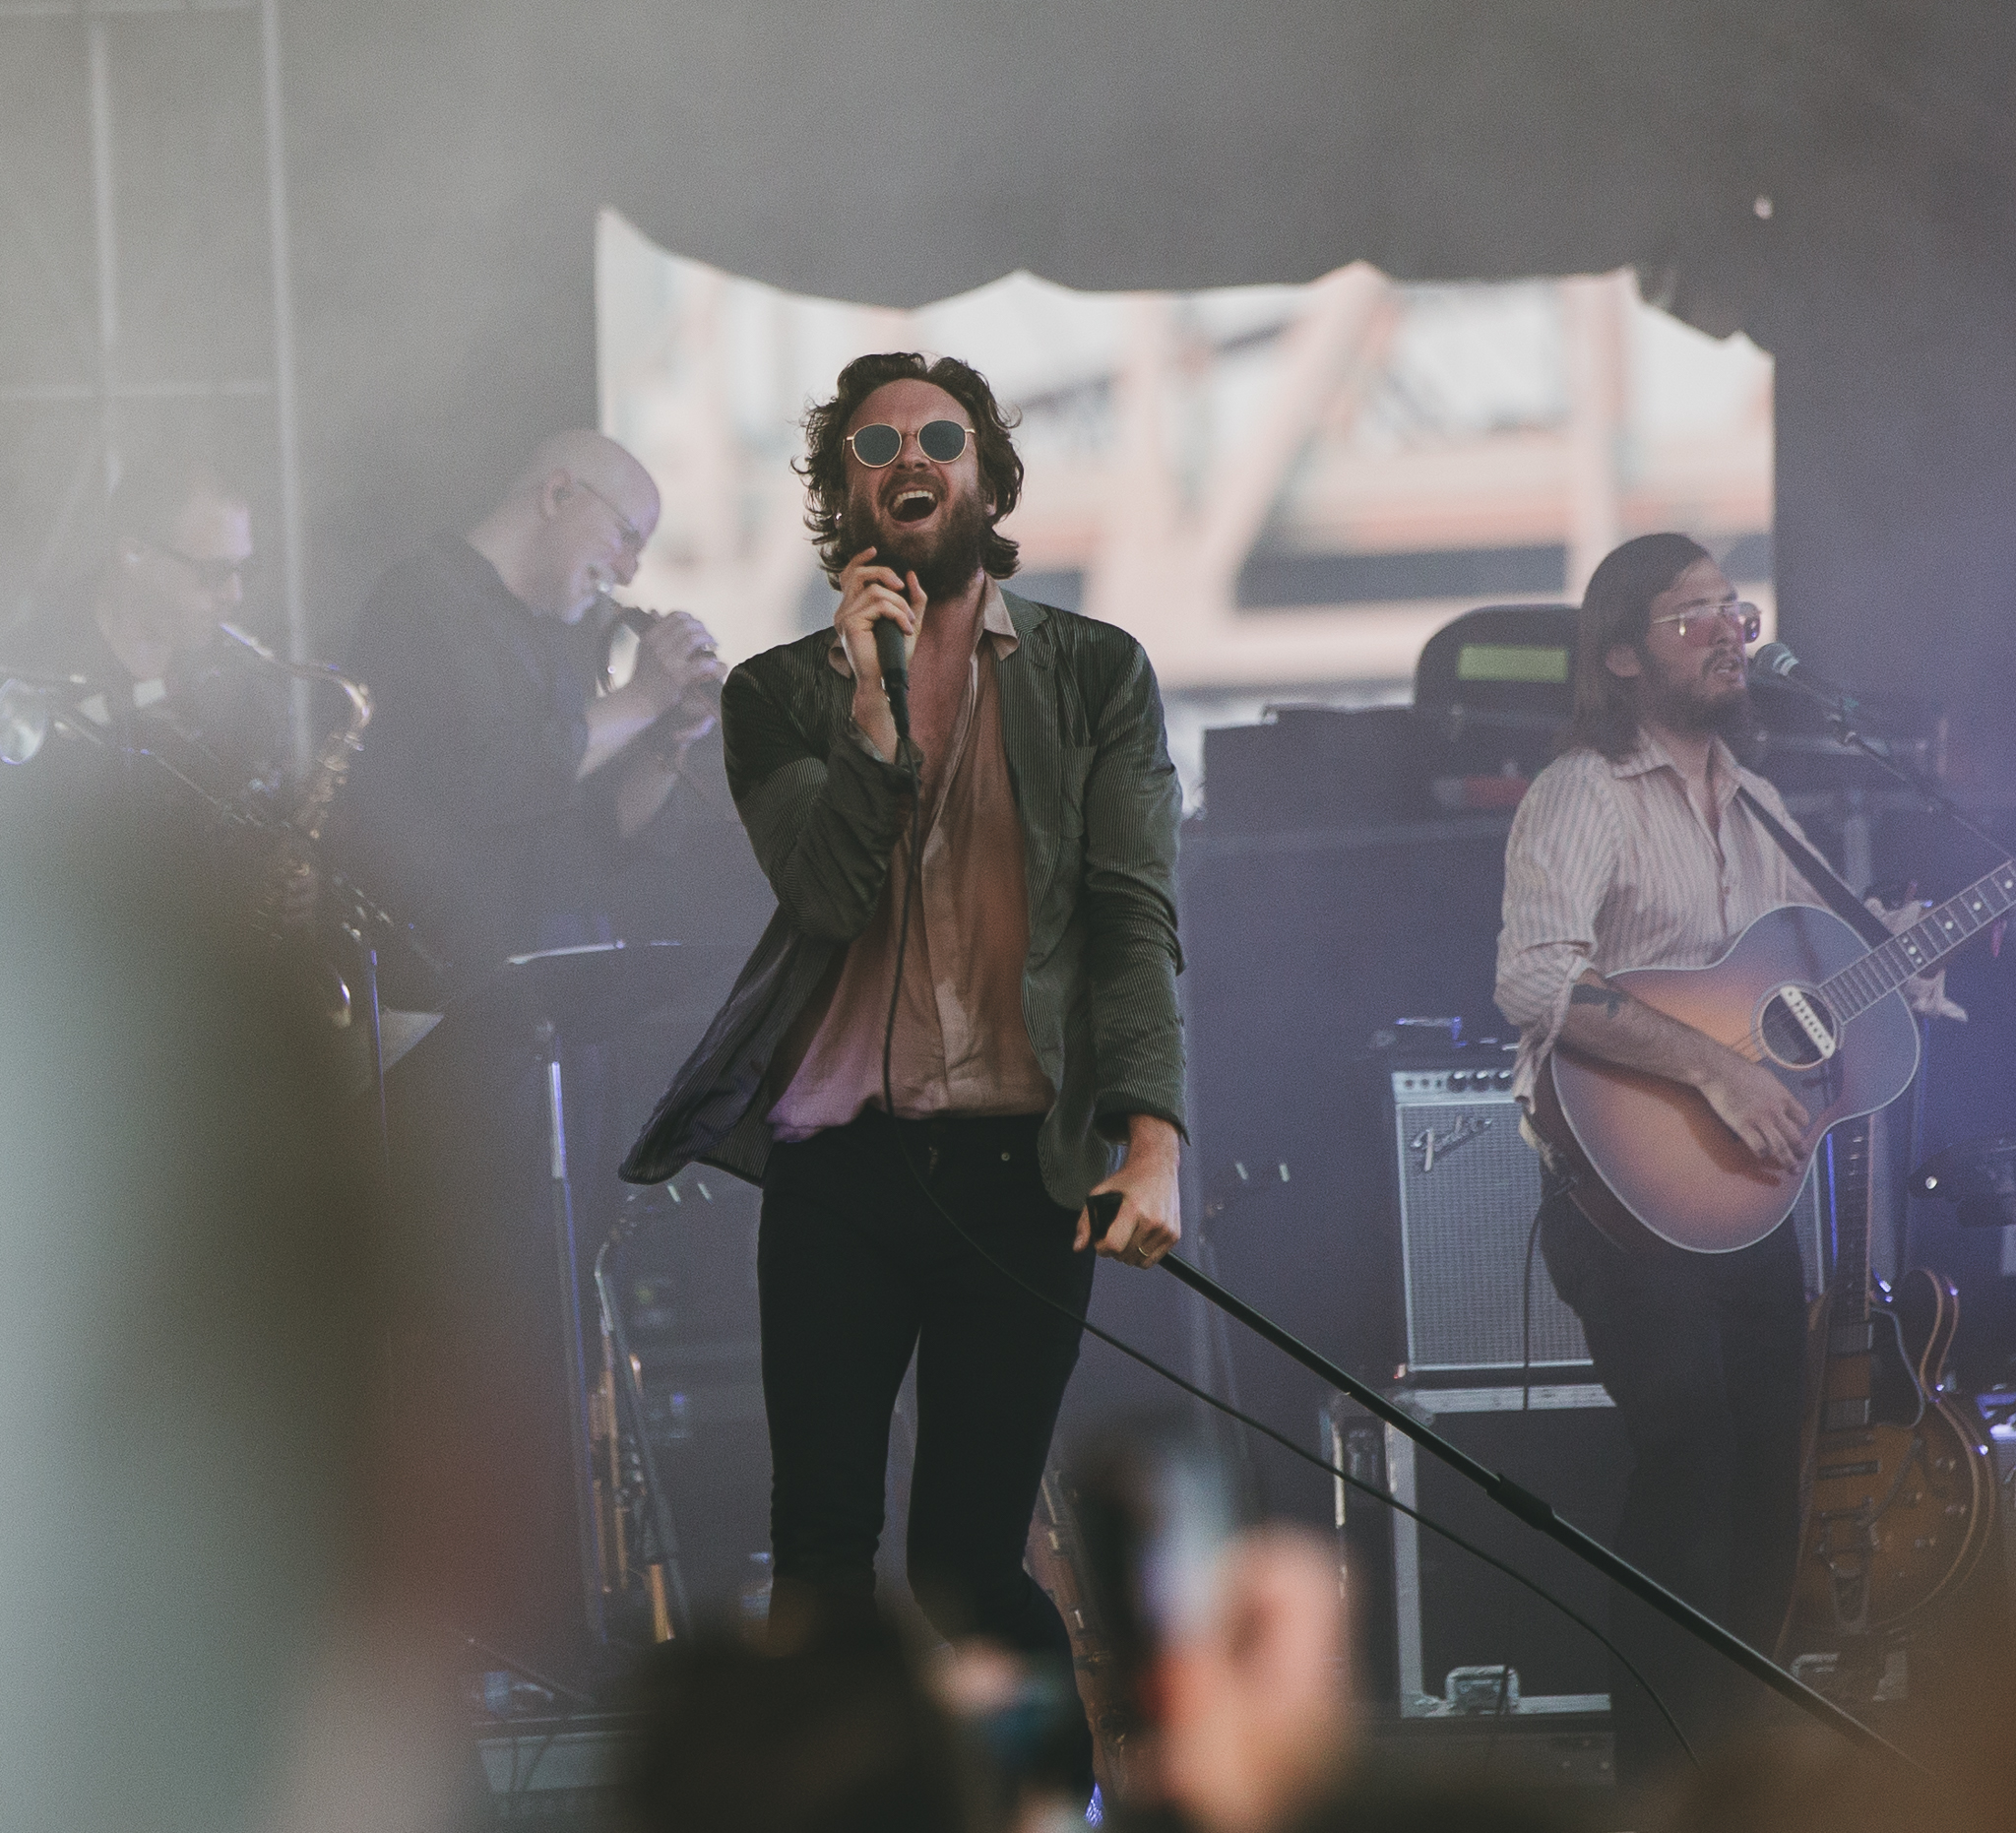 Father John Misty at Forecastle Festival in Louisville, KY